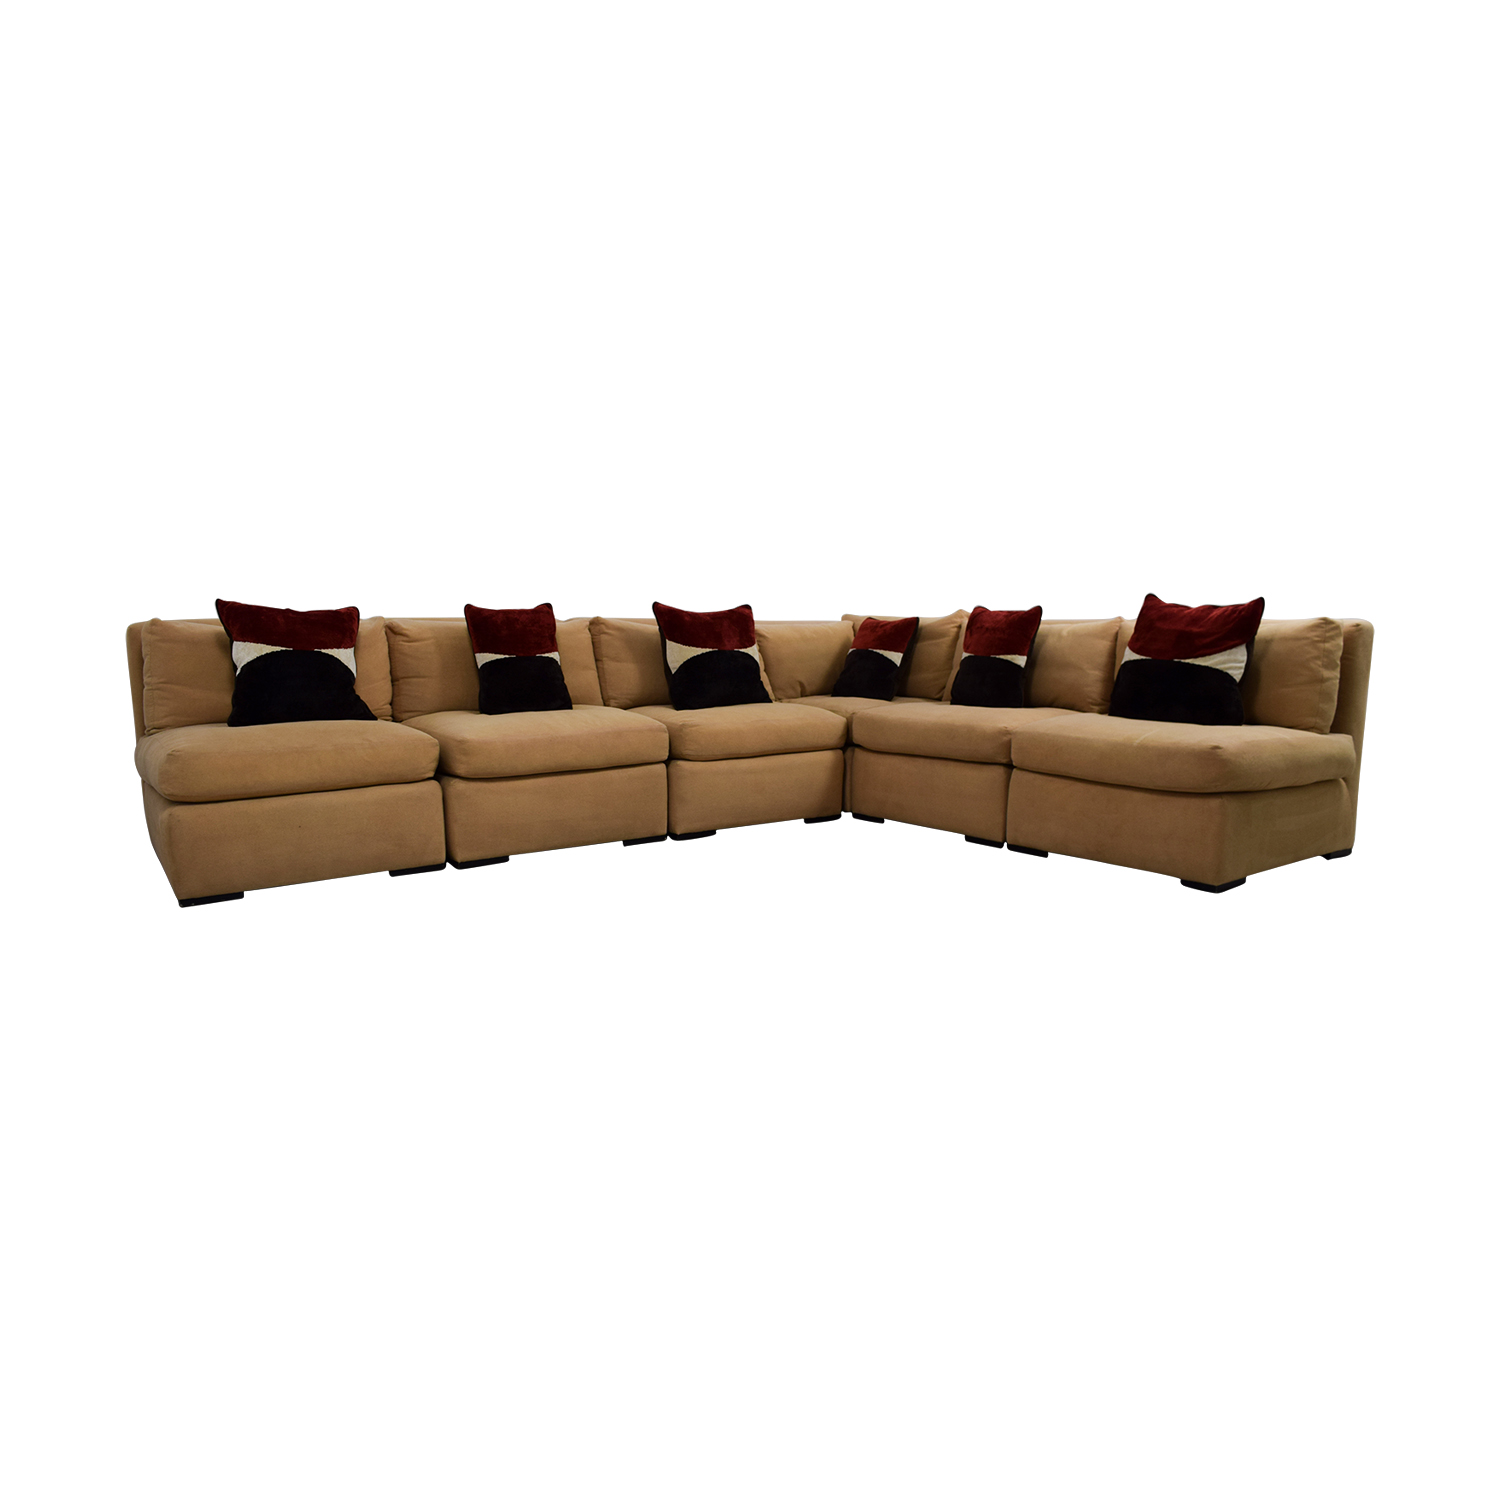 Kreiss Kreiss Tan L-Shaped Sectional with Toss Pillows second hand